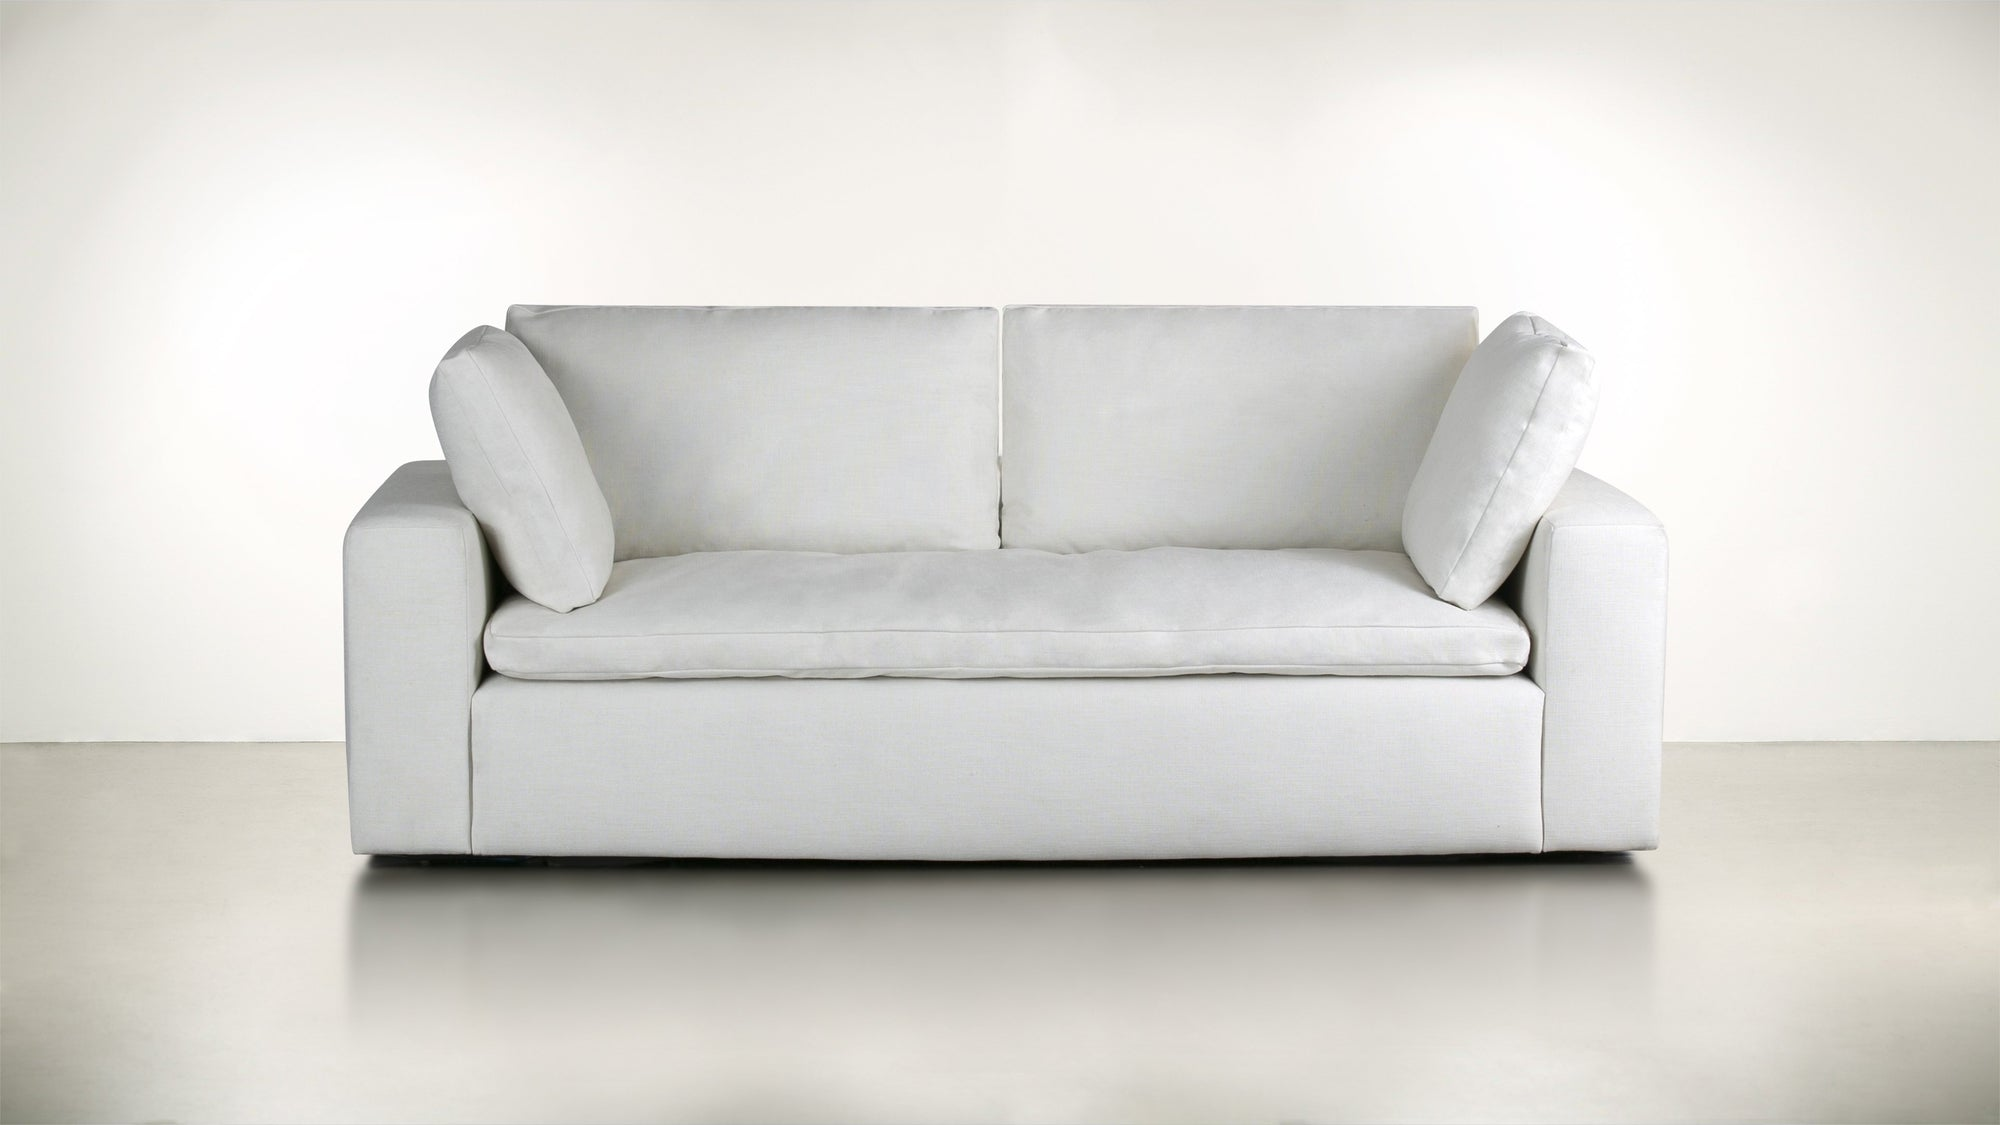 The Freelancer Sofa